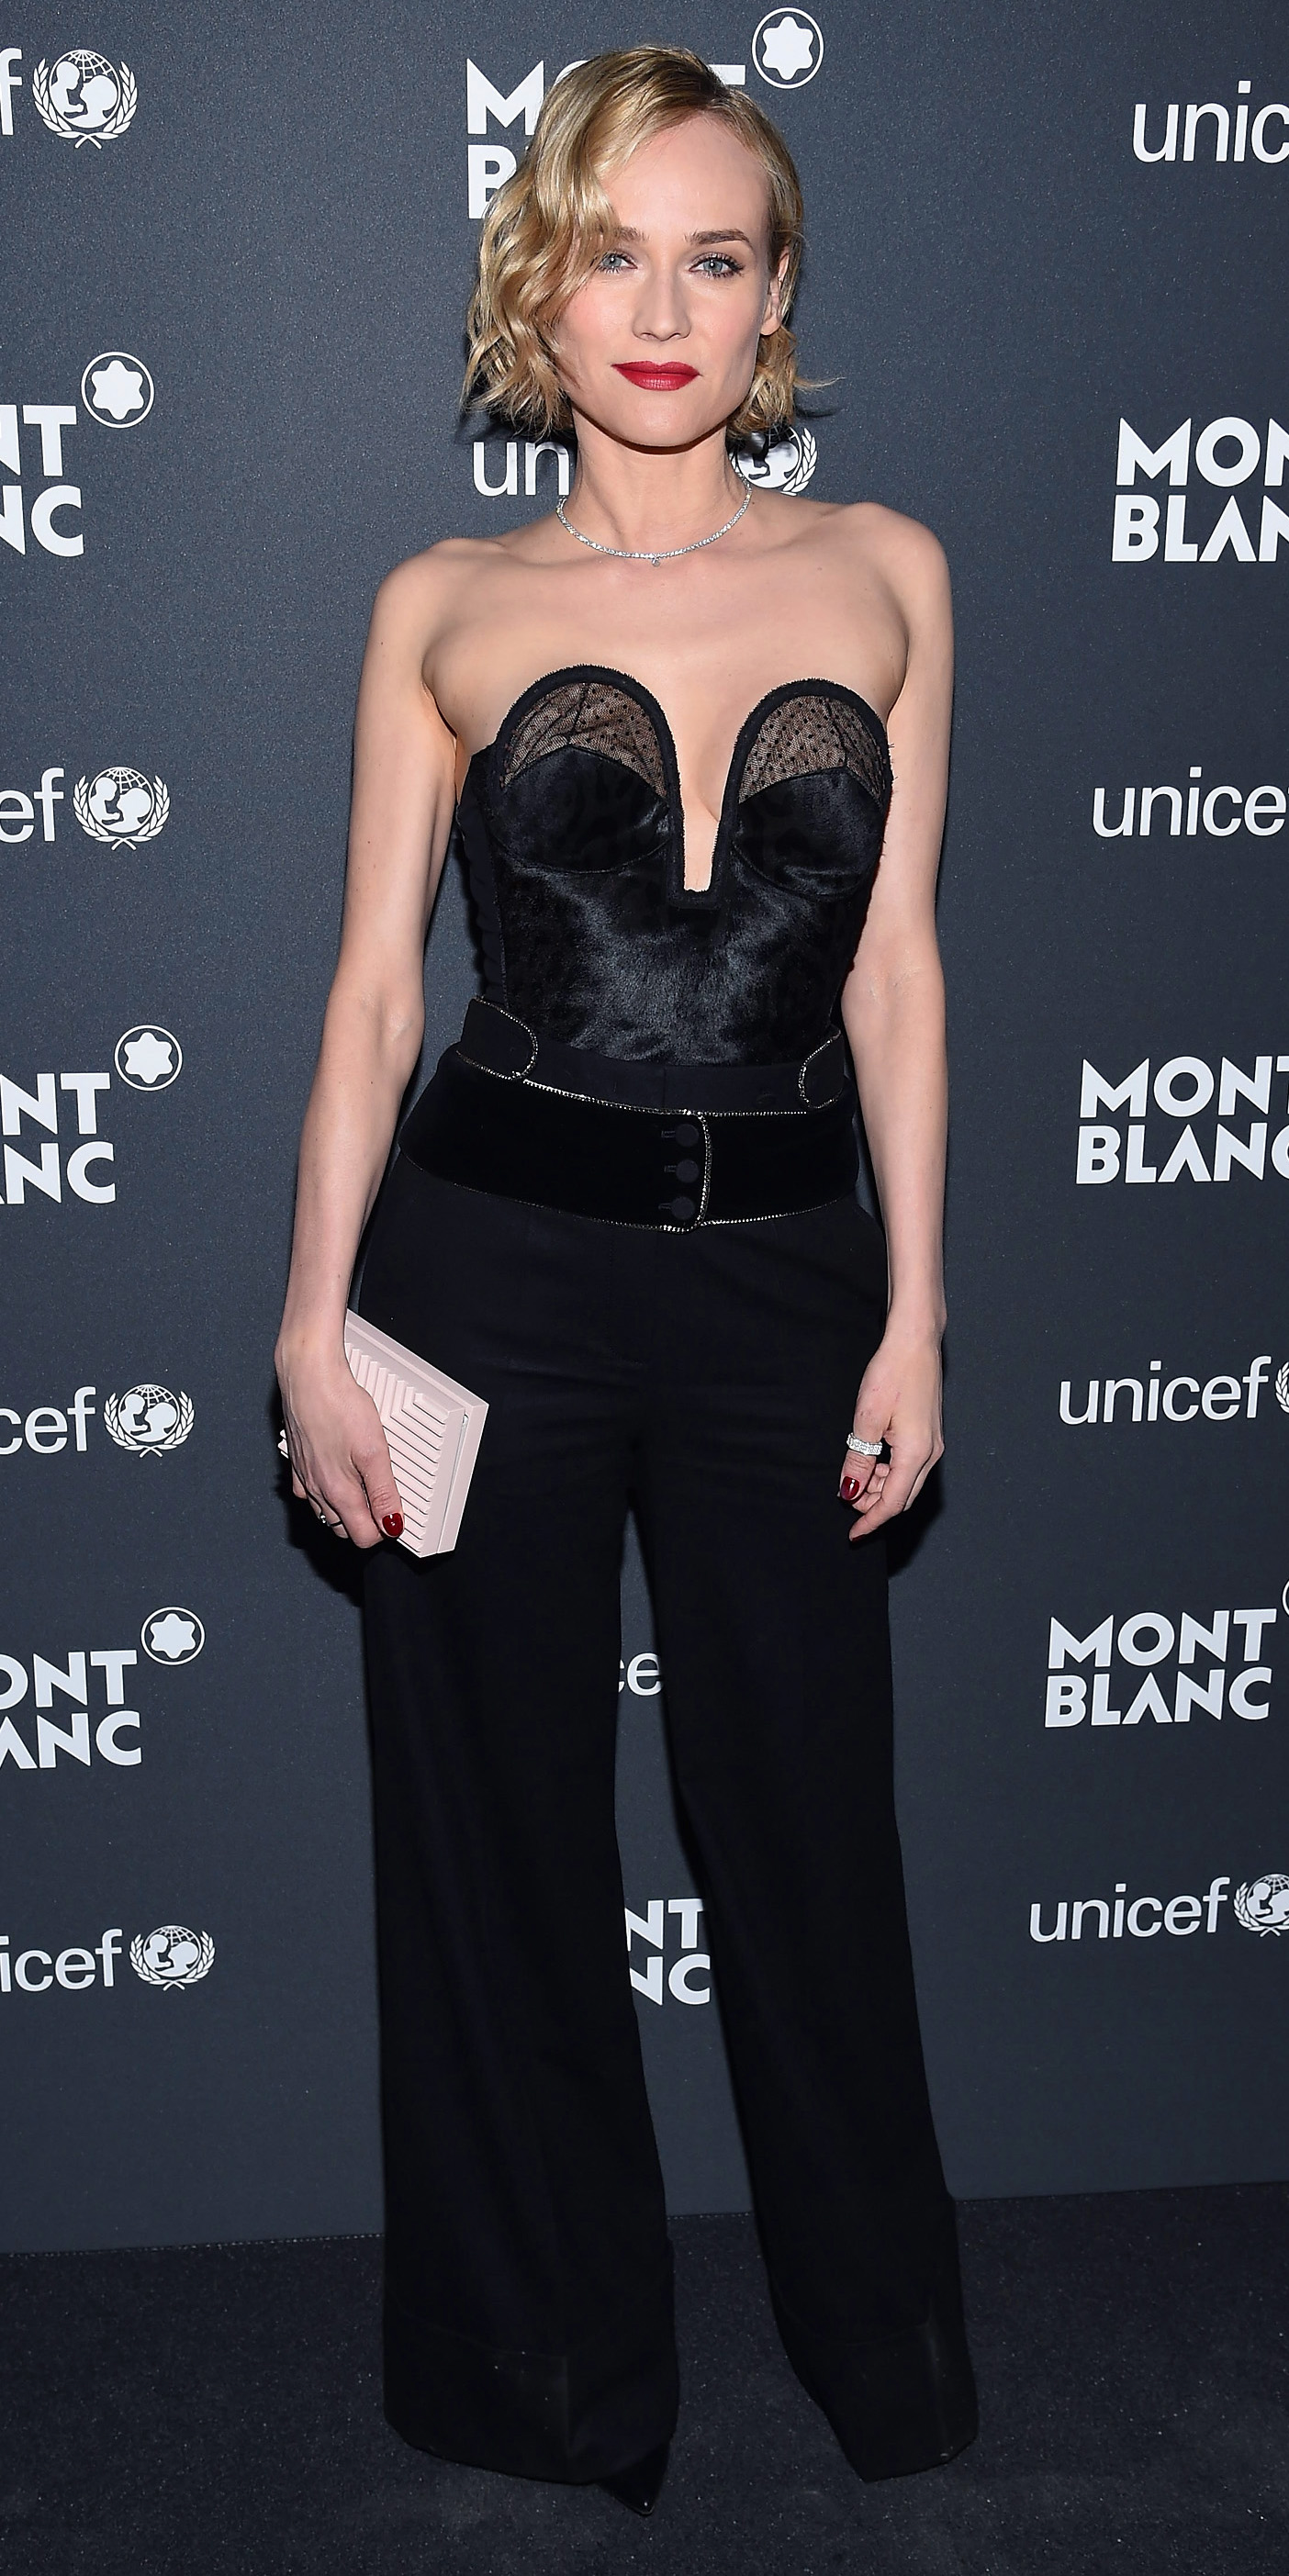 Diane Kruger, Olivia Palermo, and More Step Out for Montblanc's UNICEF Party